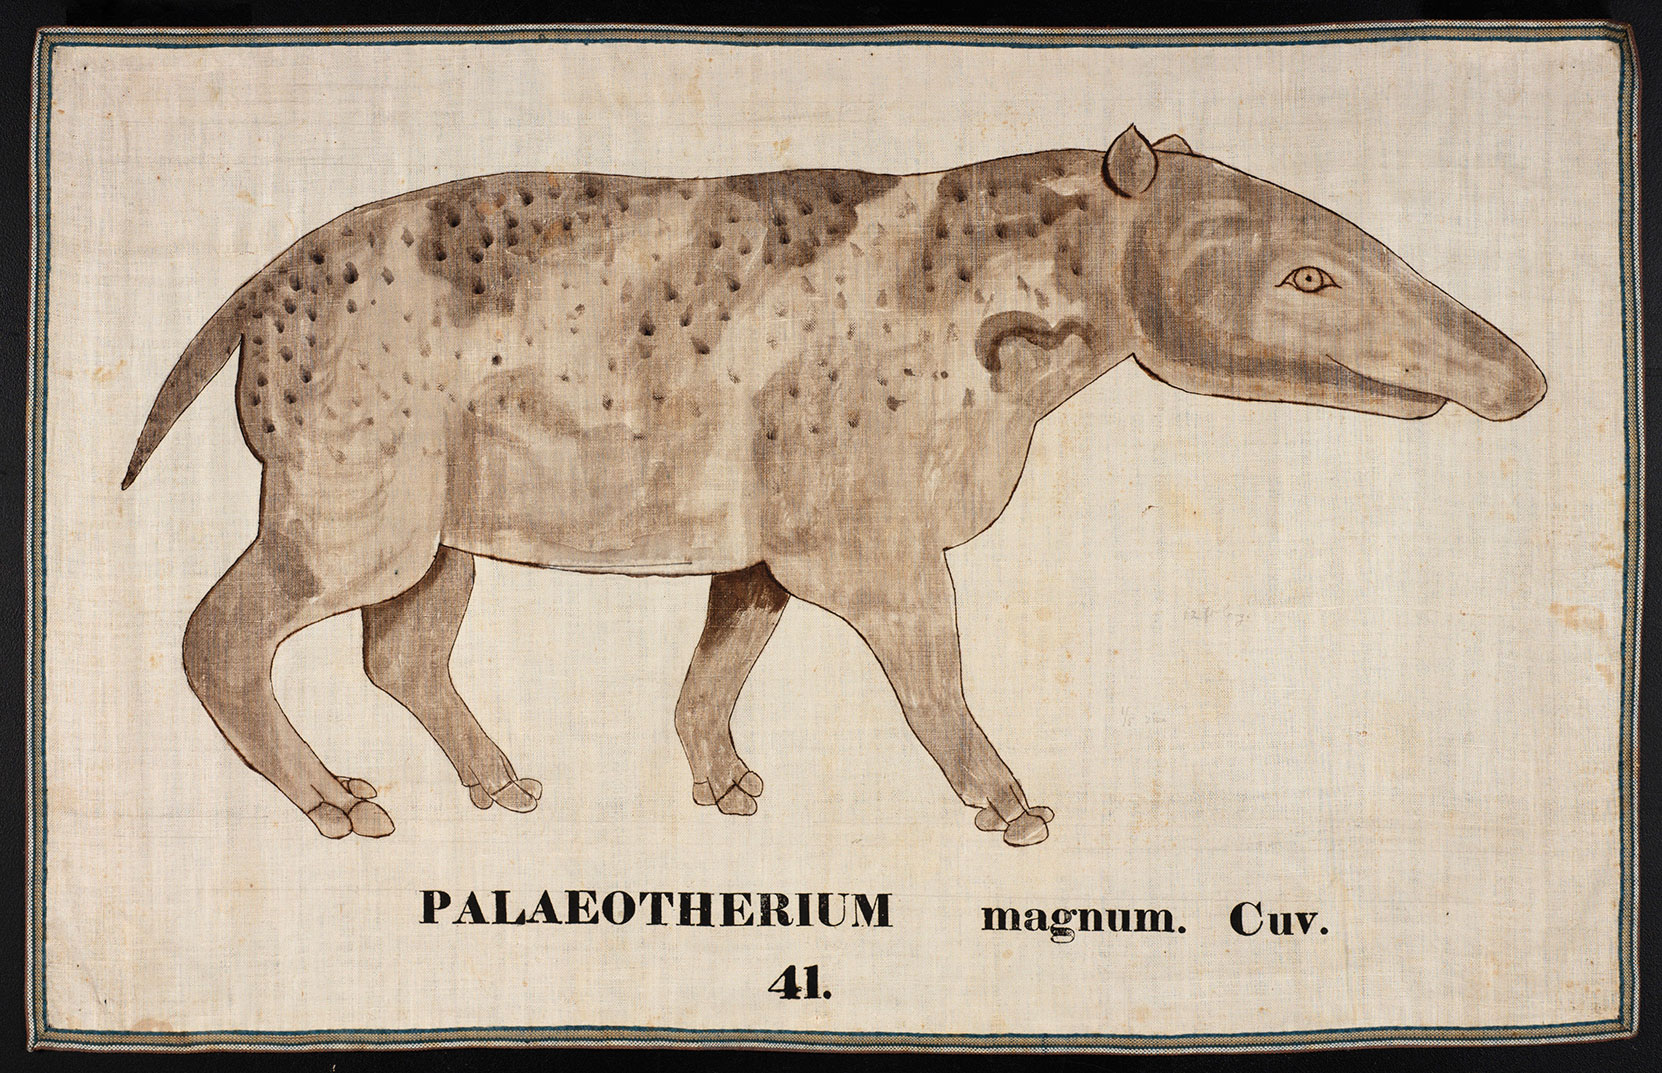 Palaeotherium by Ora White Hitchcock